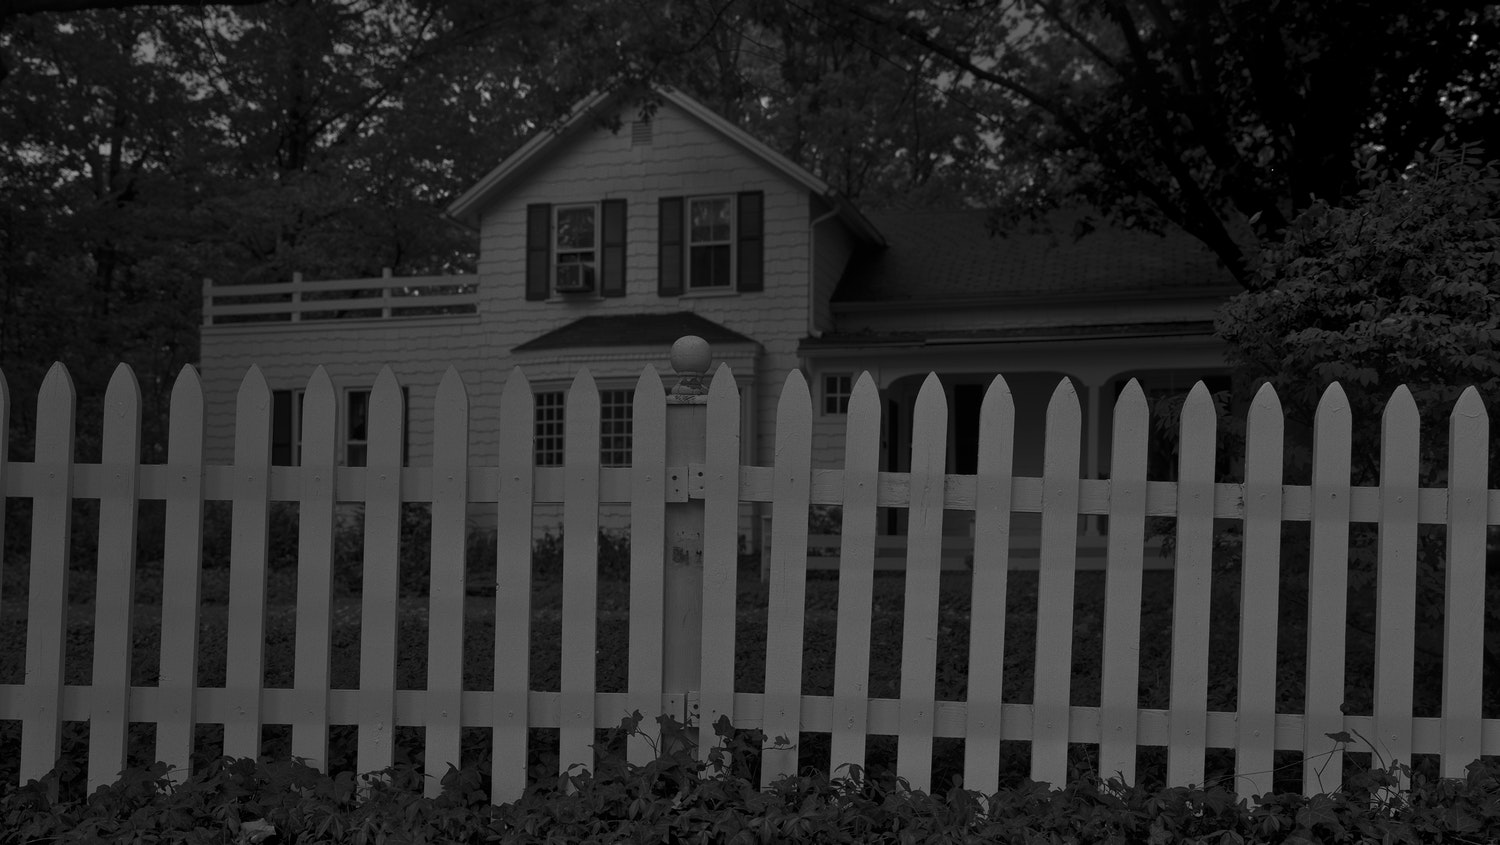 Dawoud Bey.  Untitled #1 (Picket Fence and Farmhouse) , from the series  Night Coming Tenderly, Black , 2017. Rennie Collection, Vancouver. © Dawoud Bey.